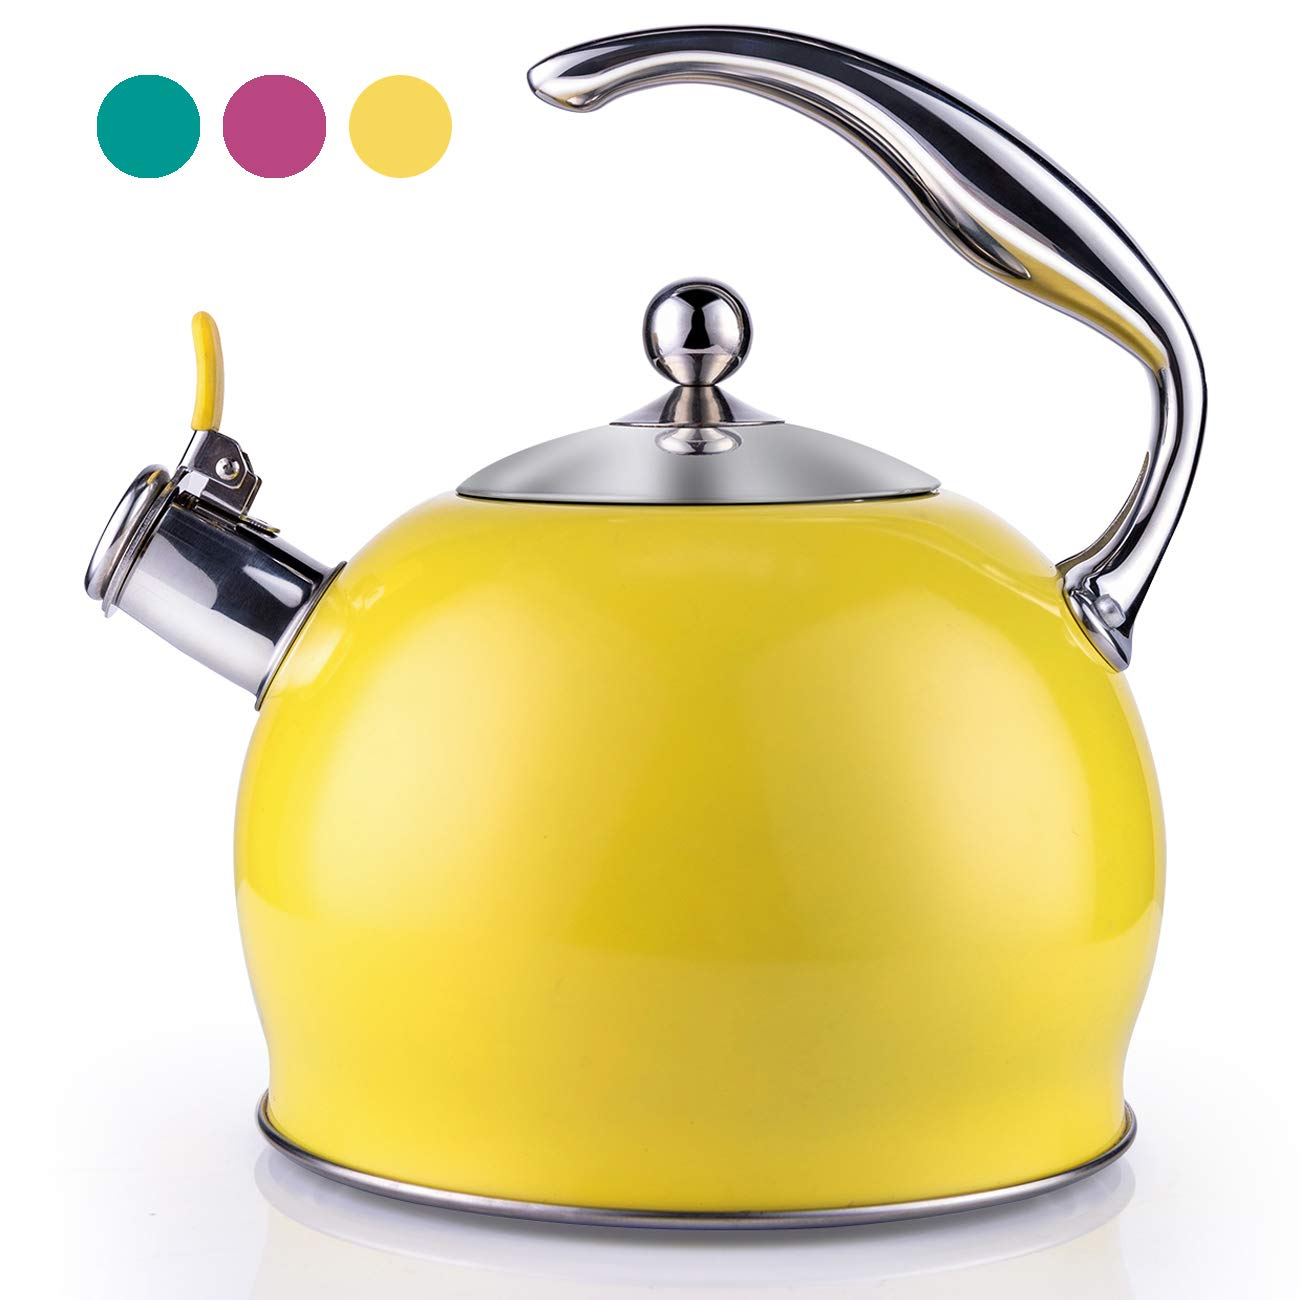 Tea Kettle Best 3 Quart induction Modern Stainless Steel Surgical Whistling Teapot -Tea Pot For Stove Top (3L, Yellow)